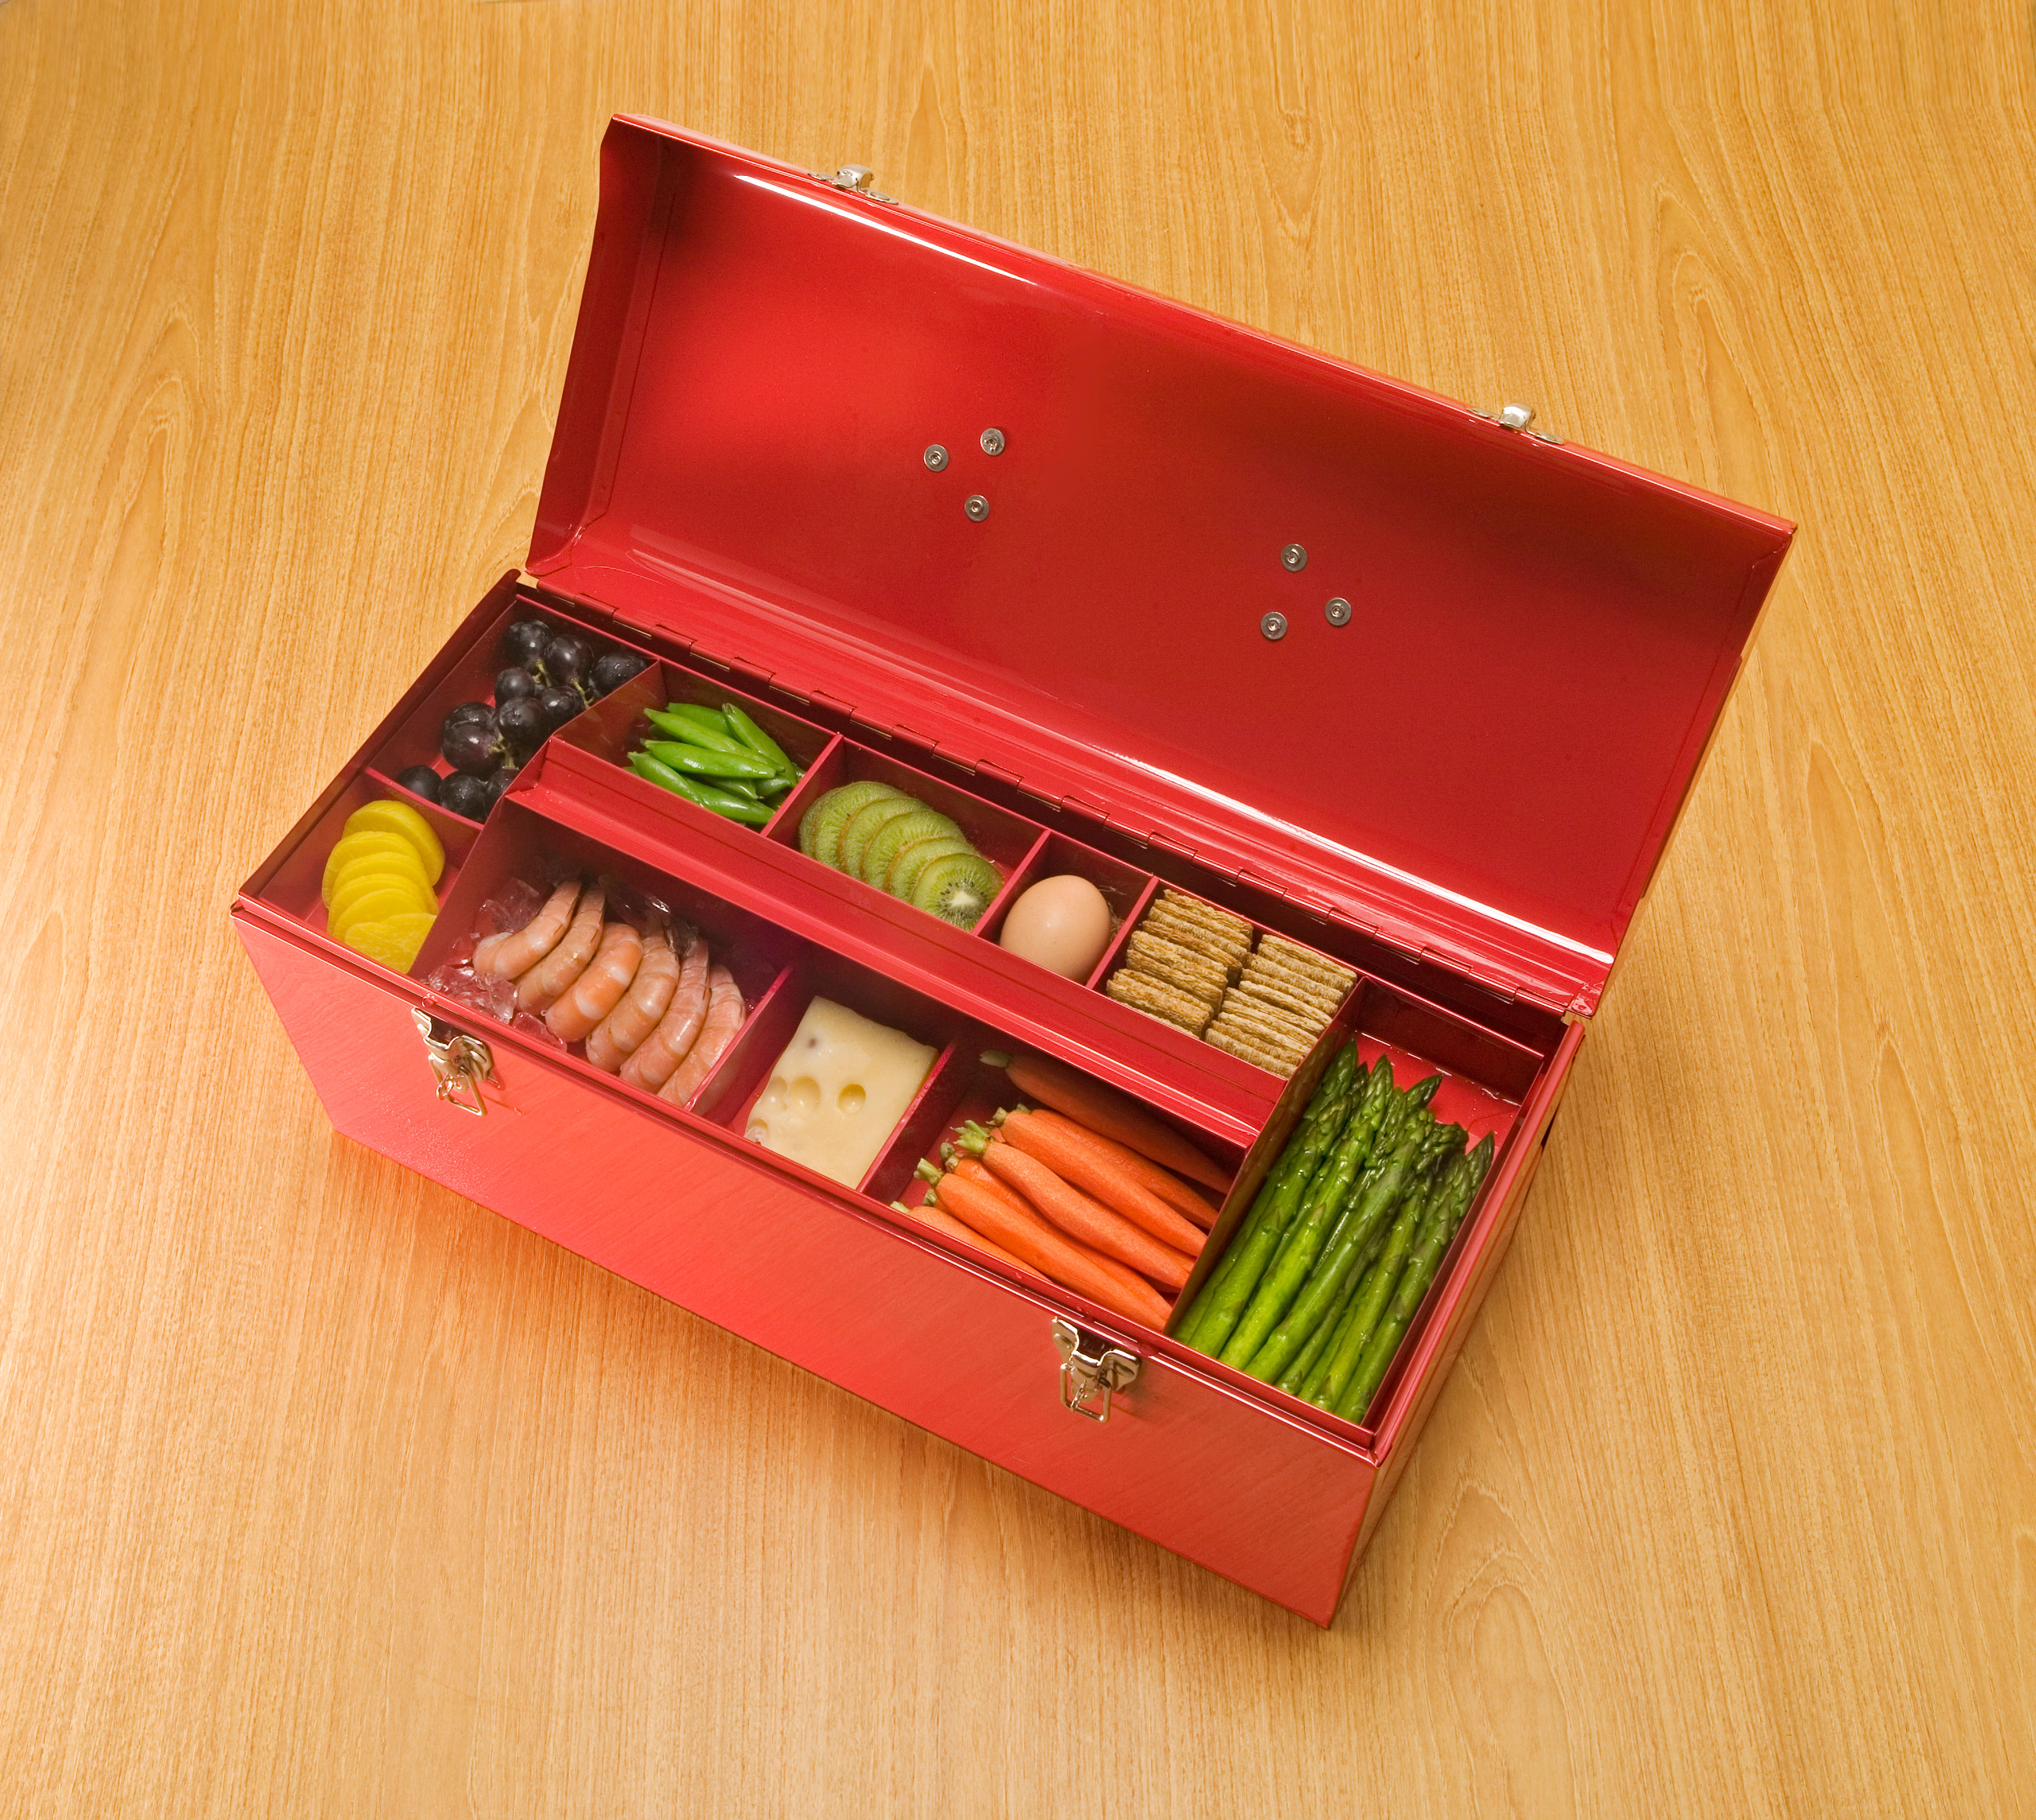 red tool box with food in top tray